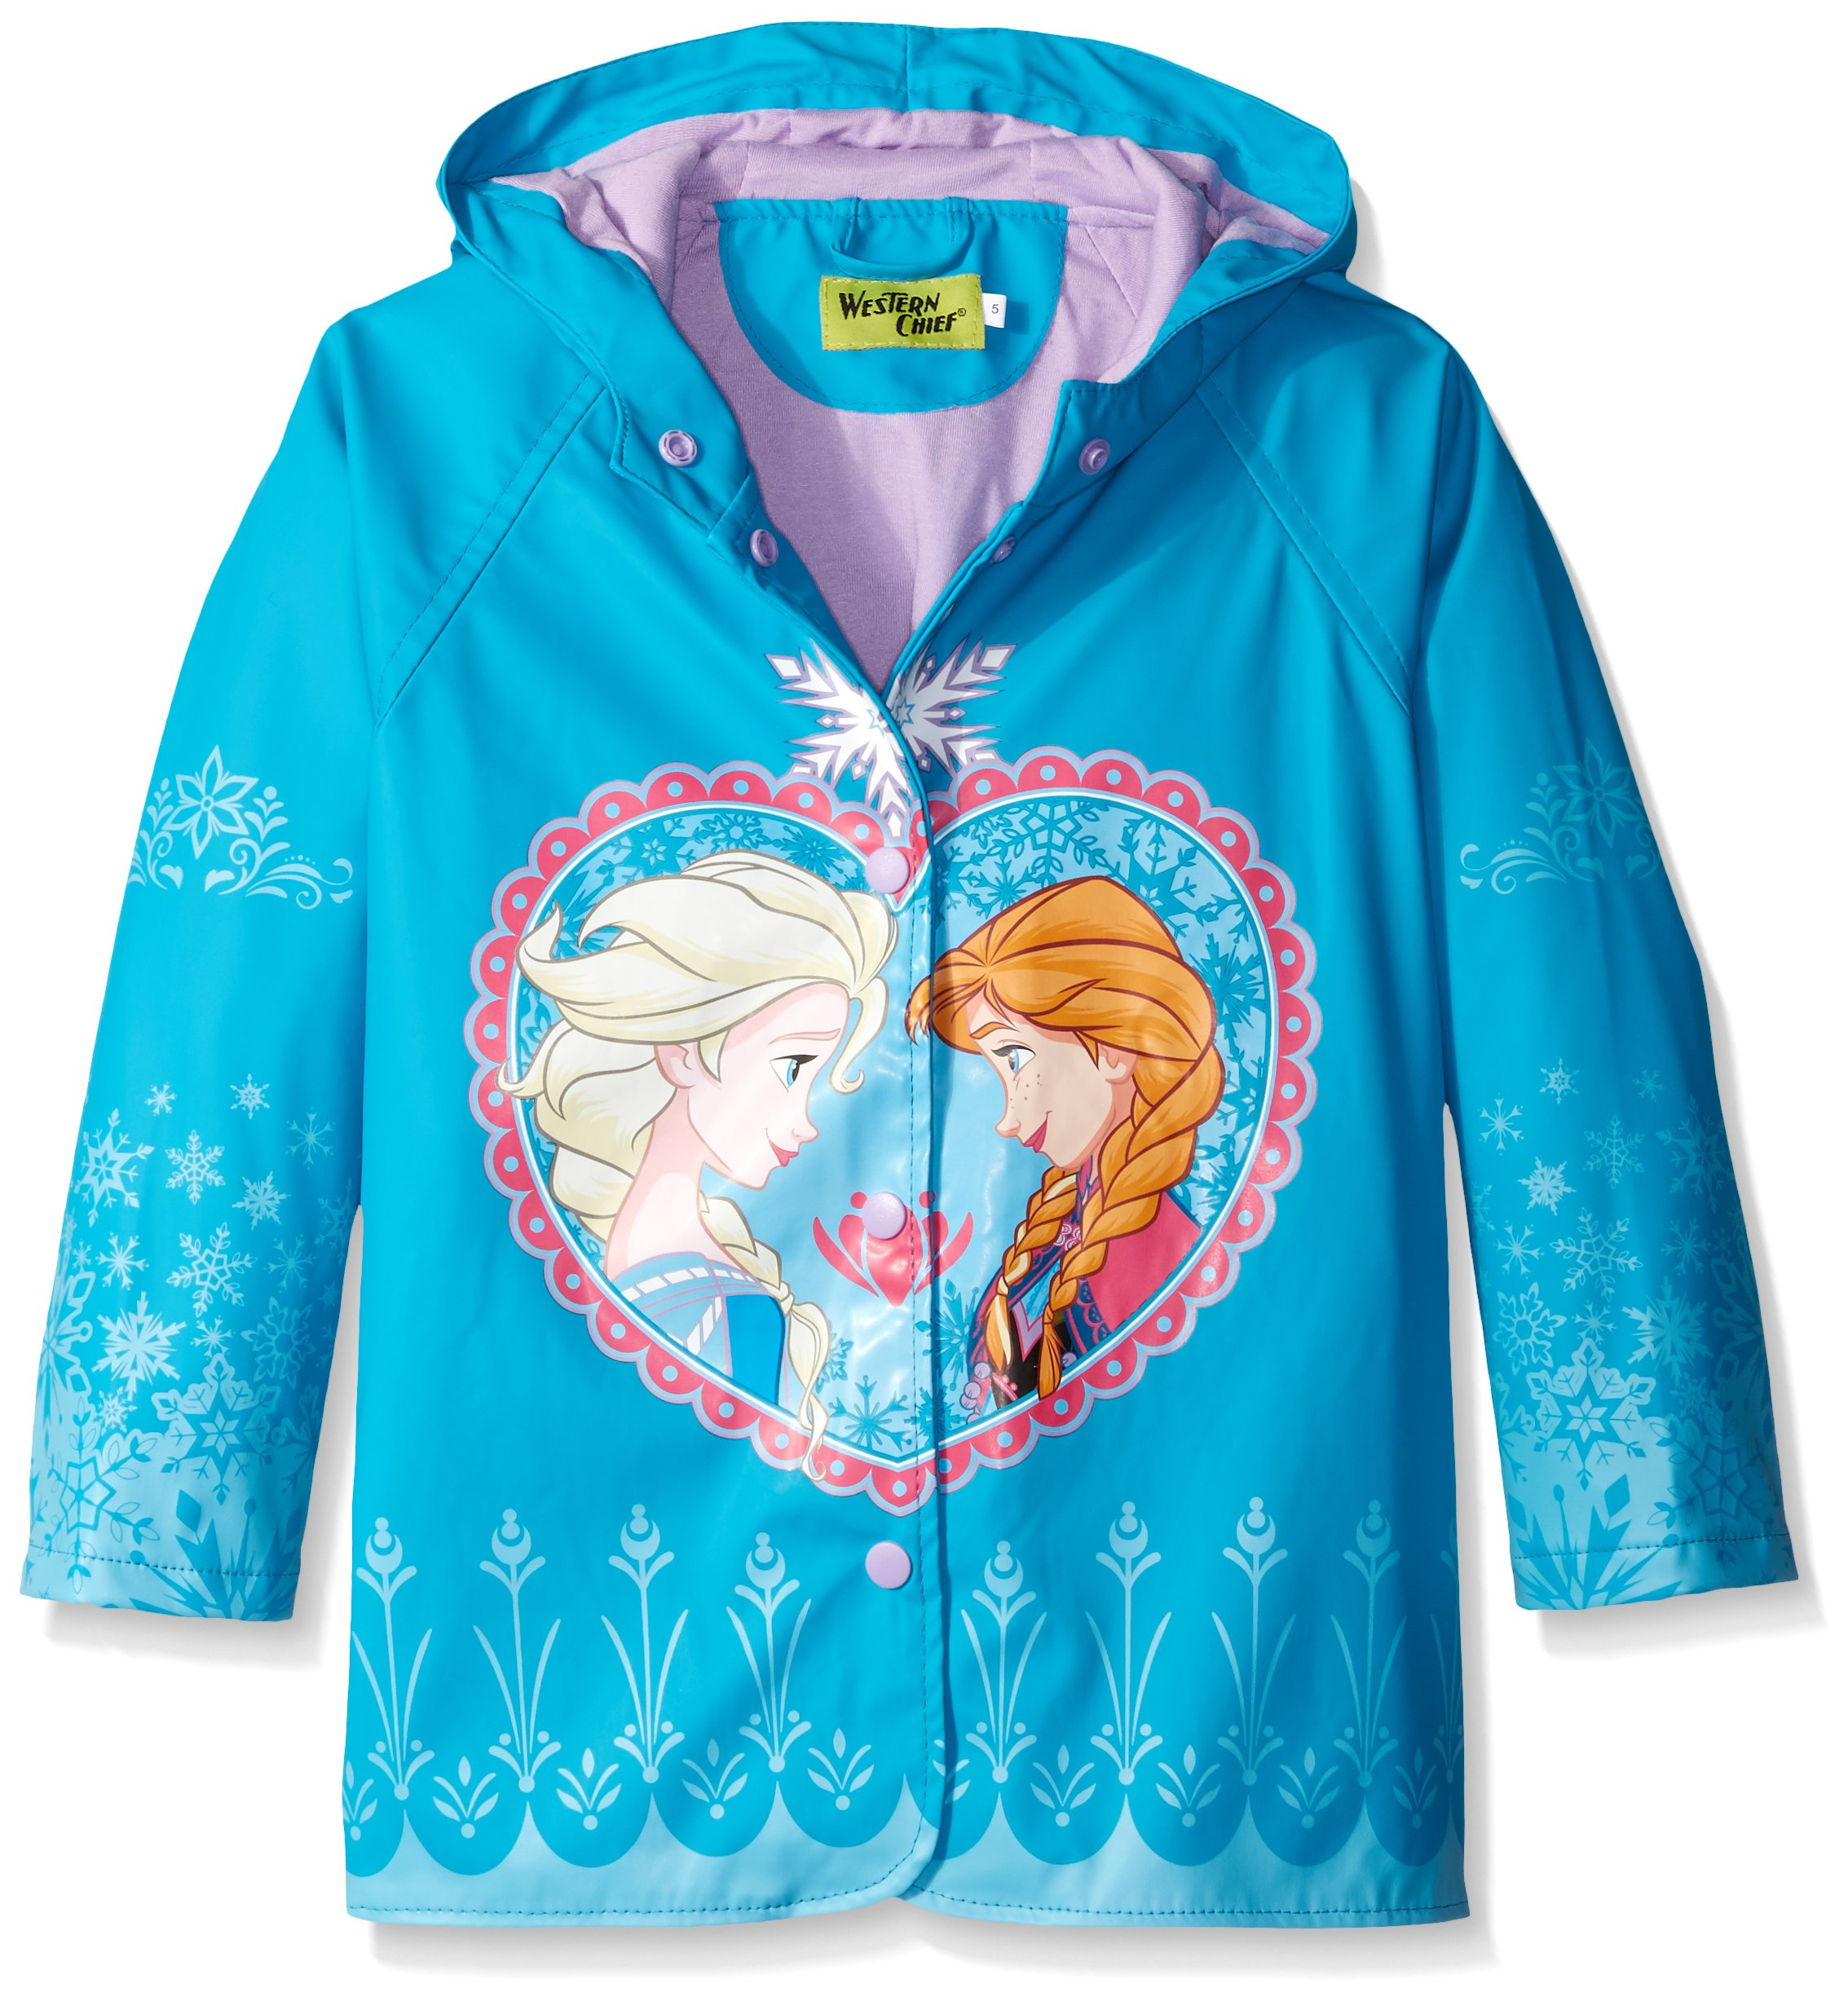 Western Chief Kids Disney Character Lined Rain Jacket, Frozen Anna and Elsa, 5